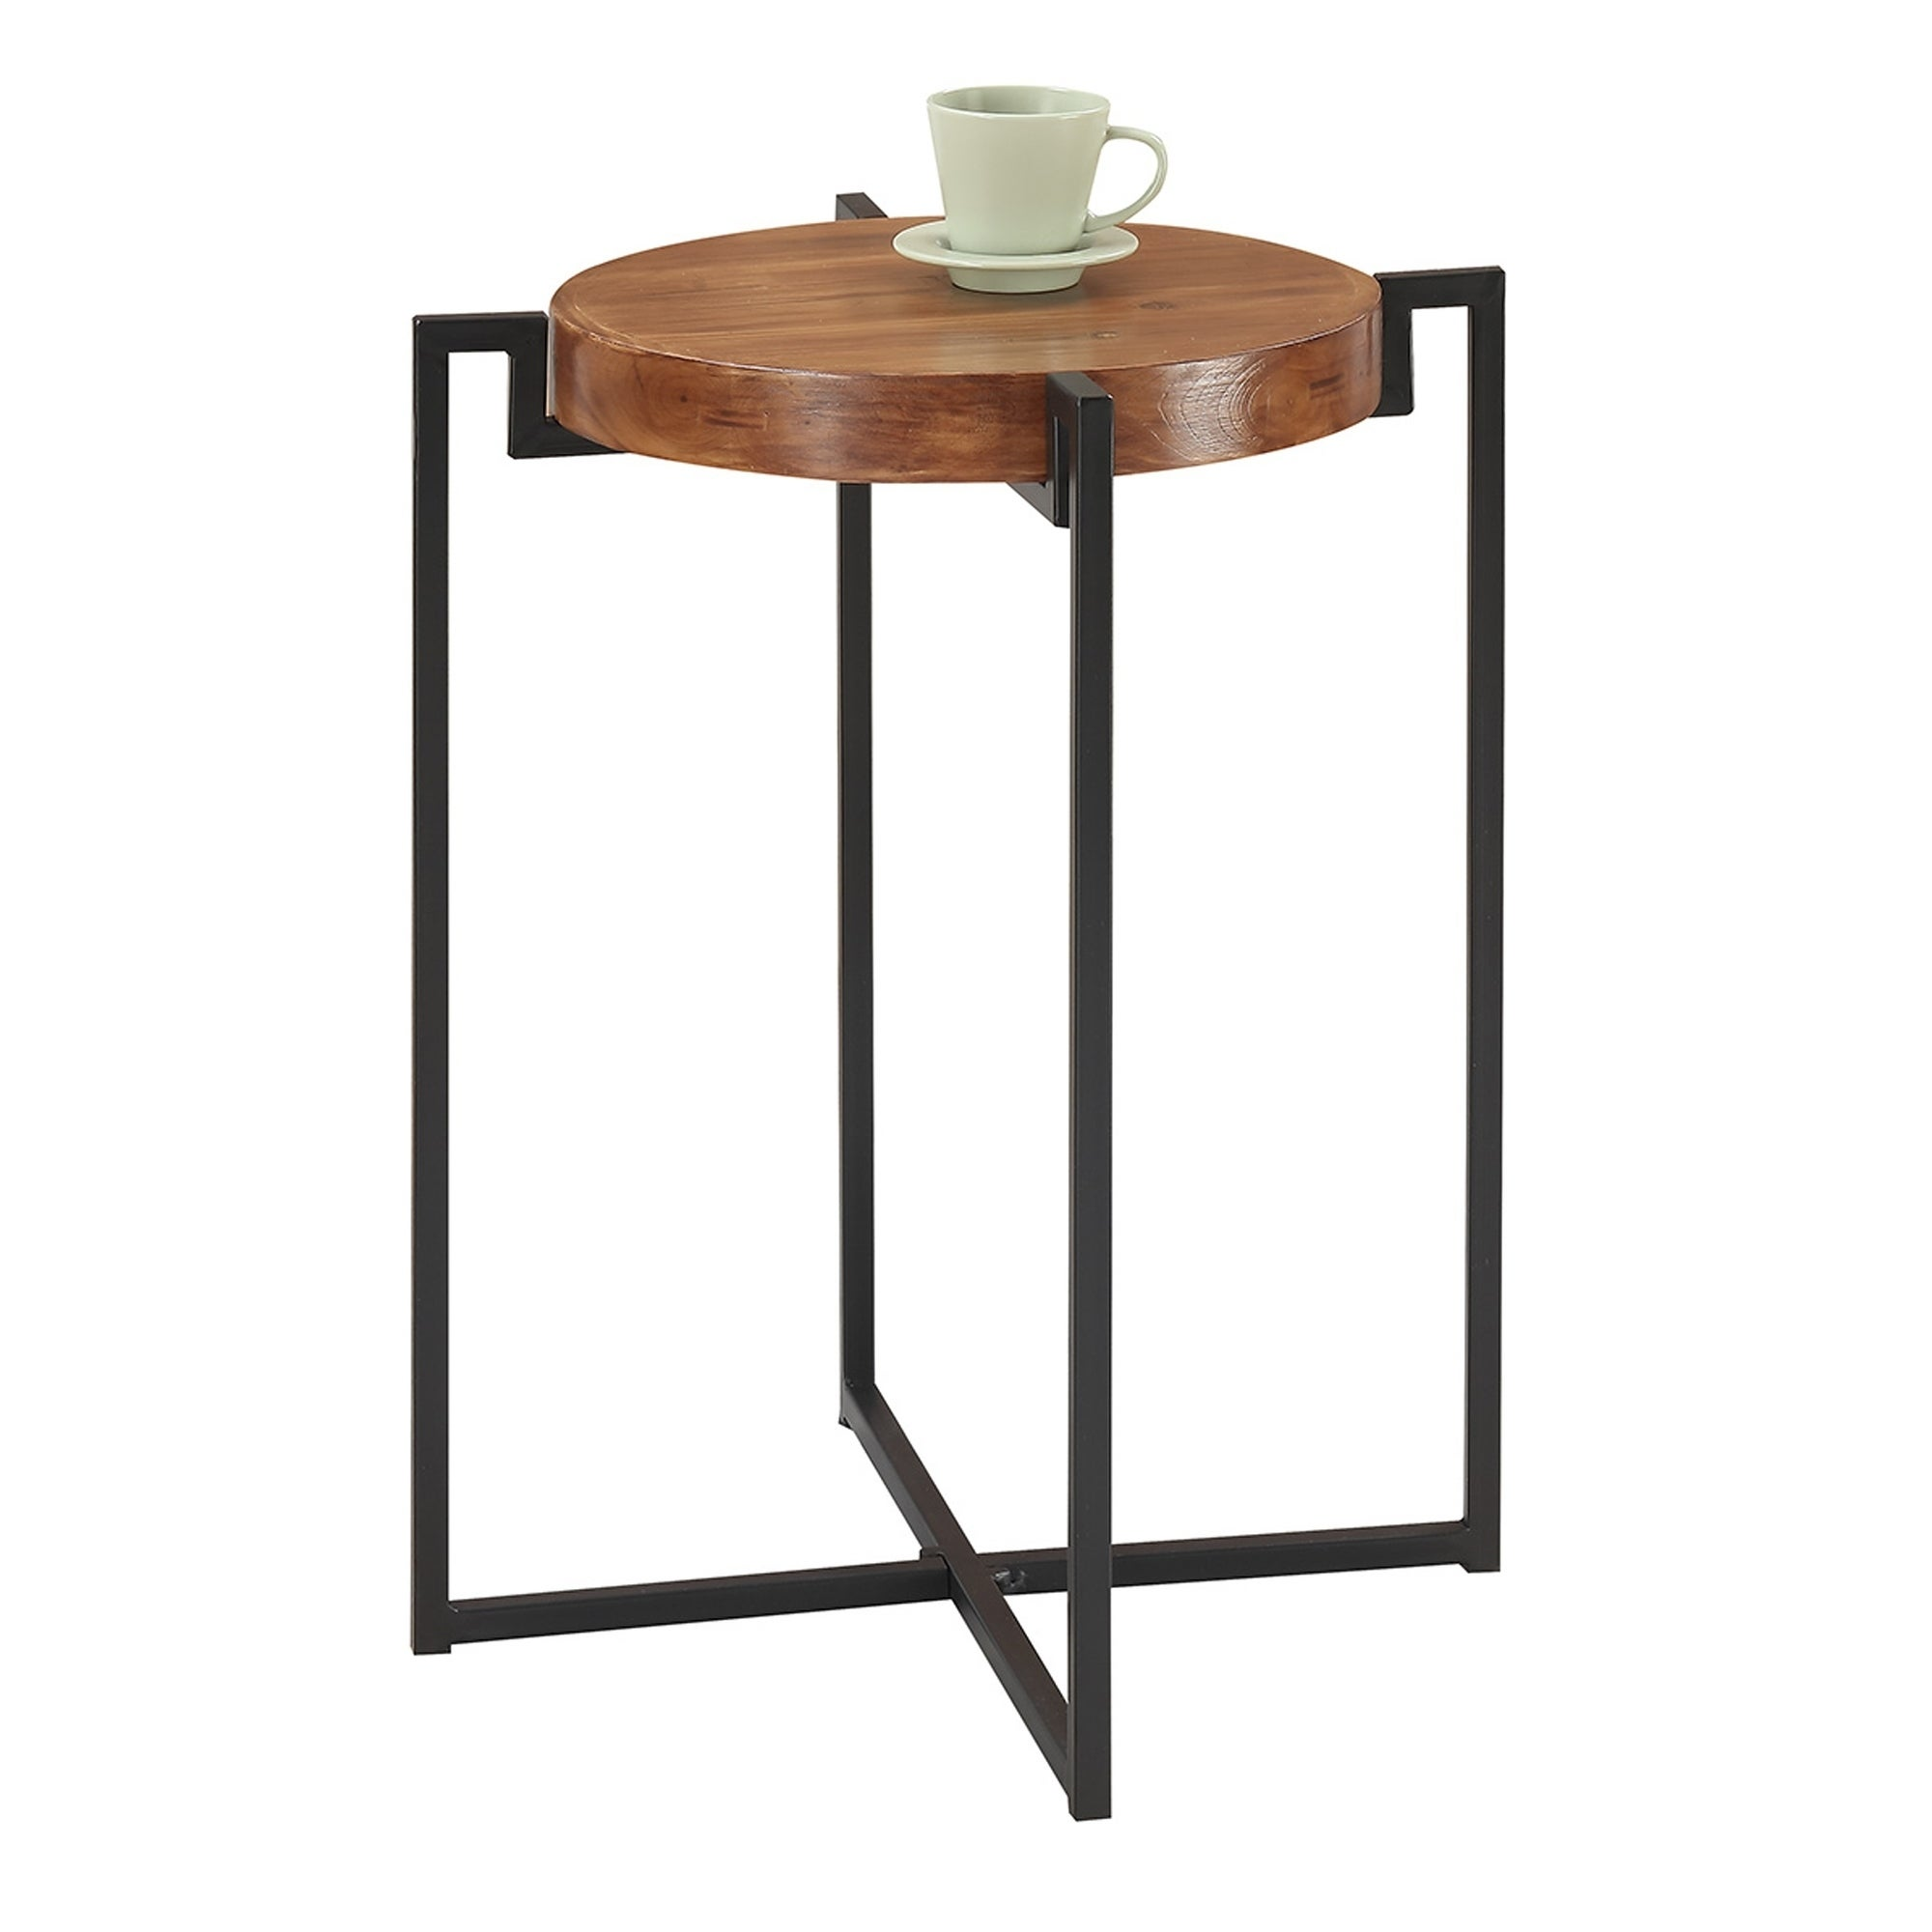 Shop Convenience Concepts Nordic Round Tray End Table   Free Shipping Today    Overstock.com   18000010